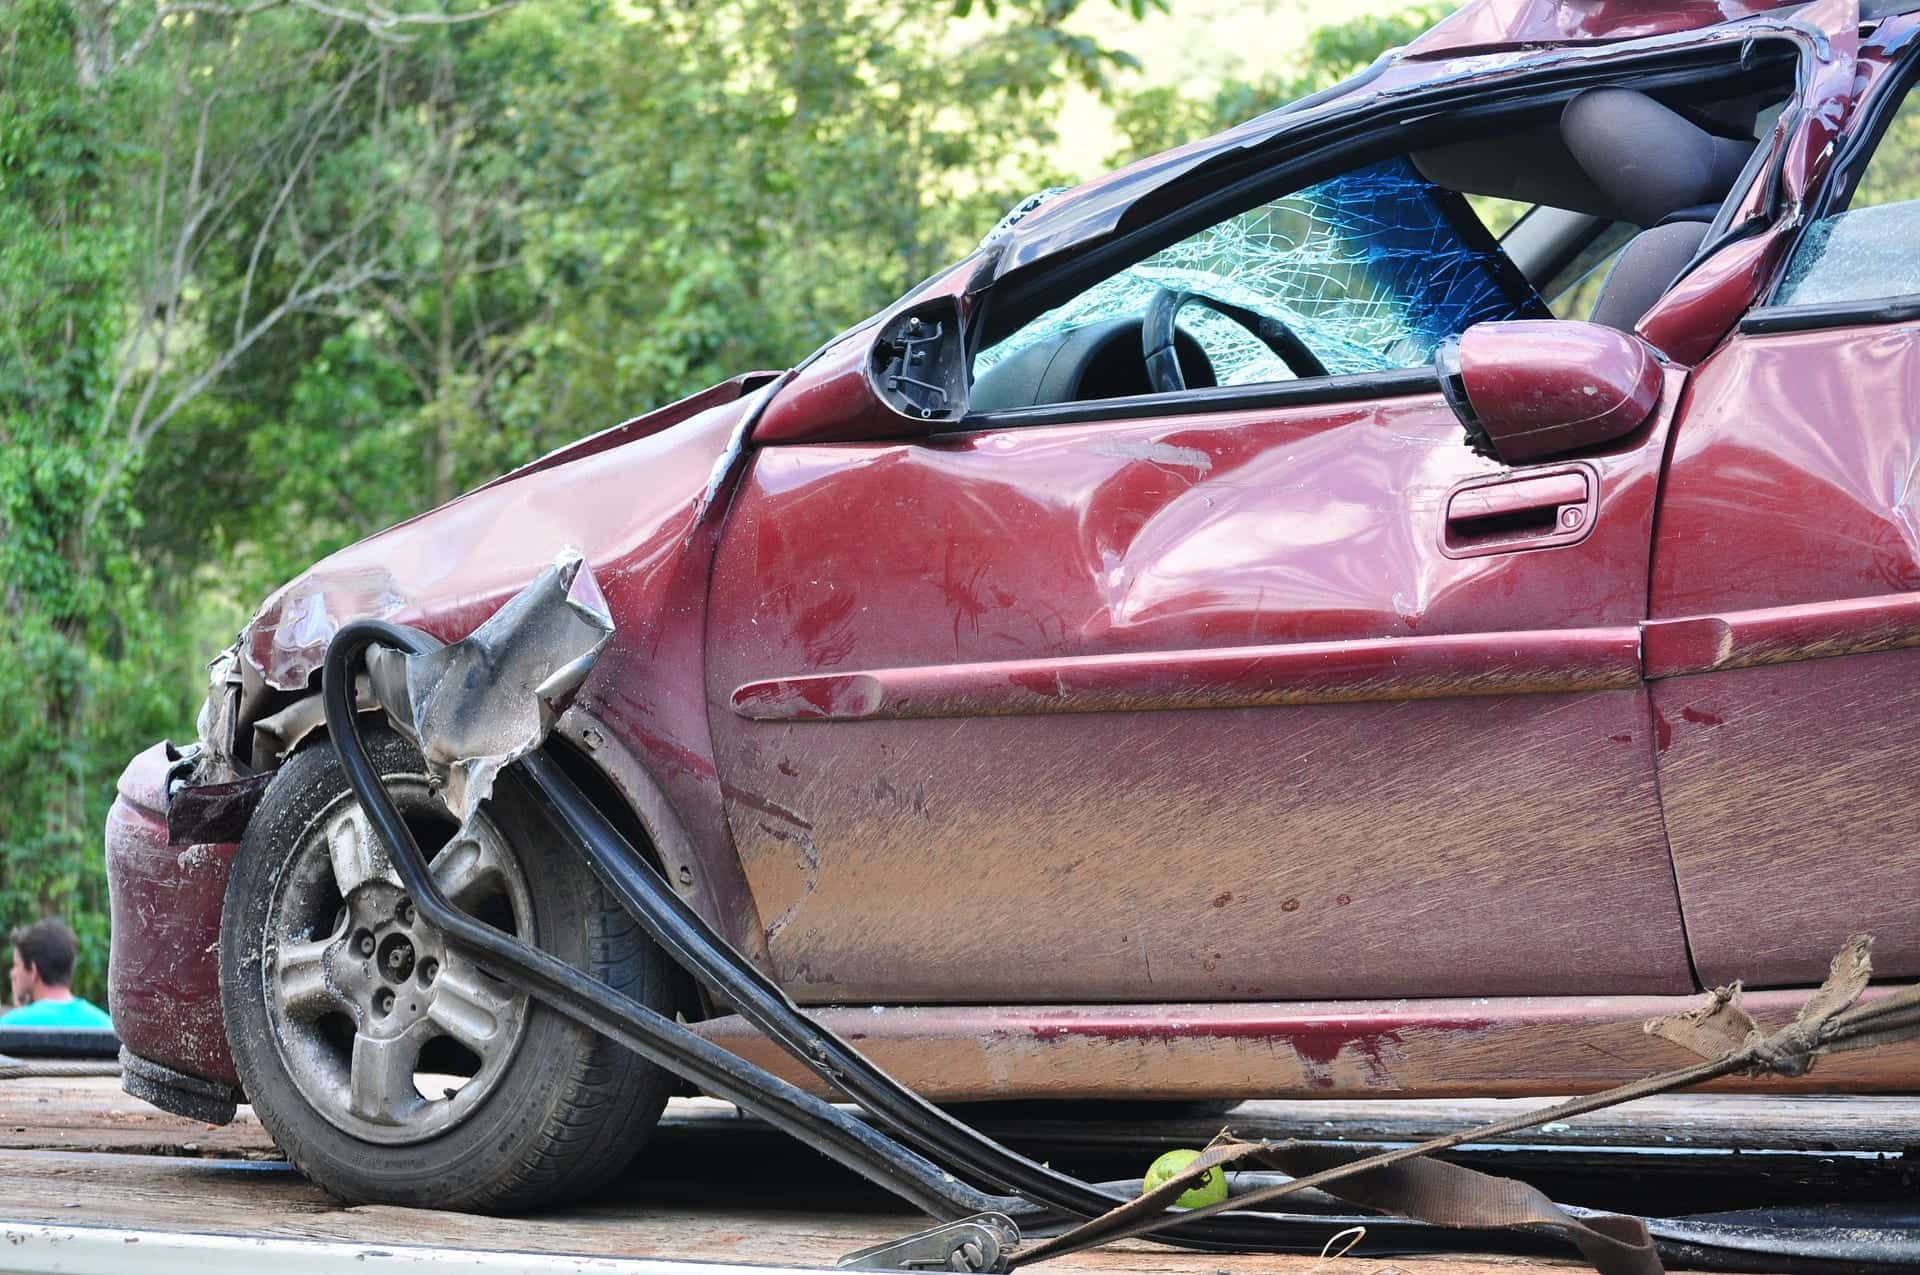 Maroon car with front-end and side collision damage; image by NettoFigueiredo, via pixabay.com.